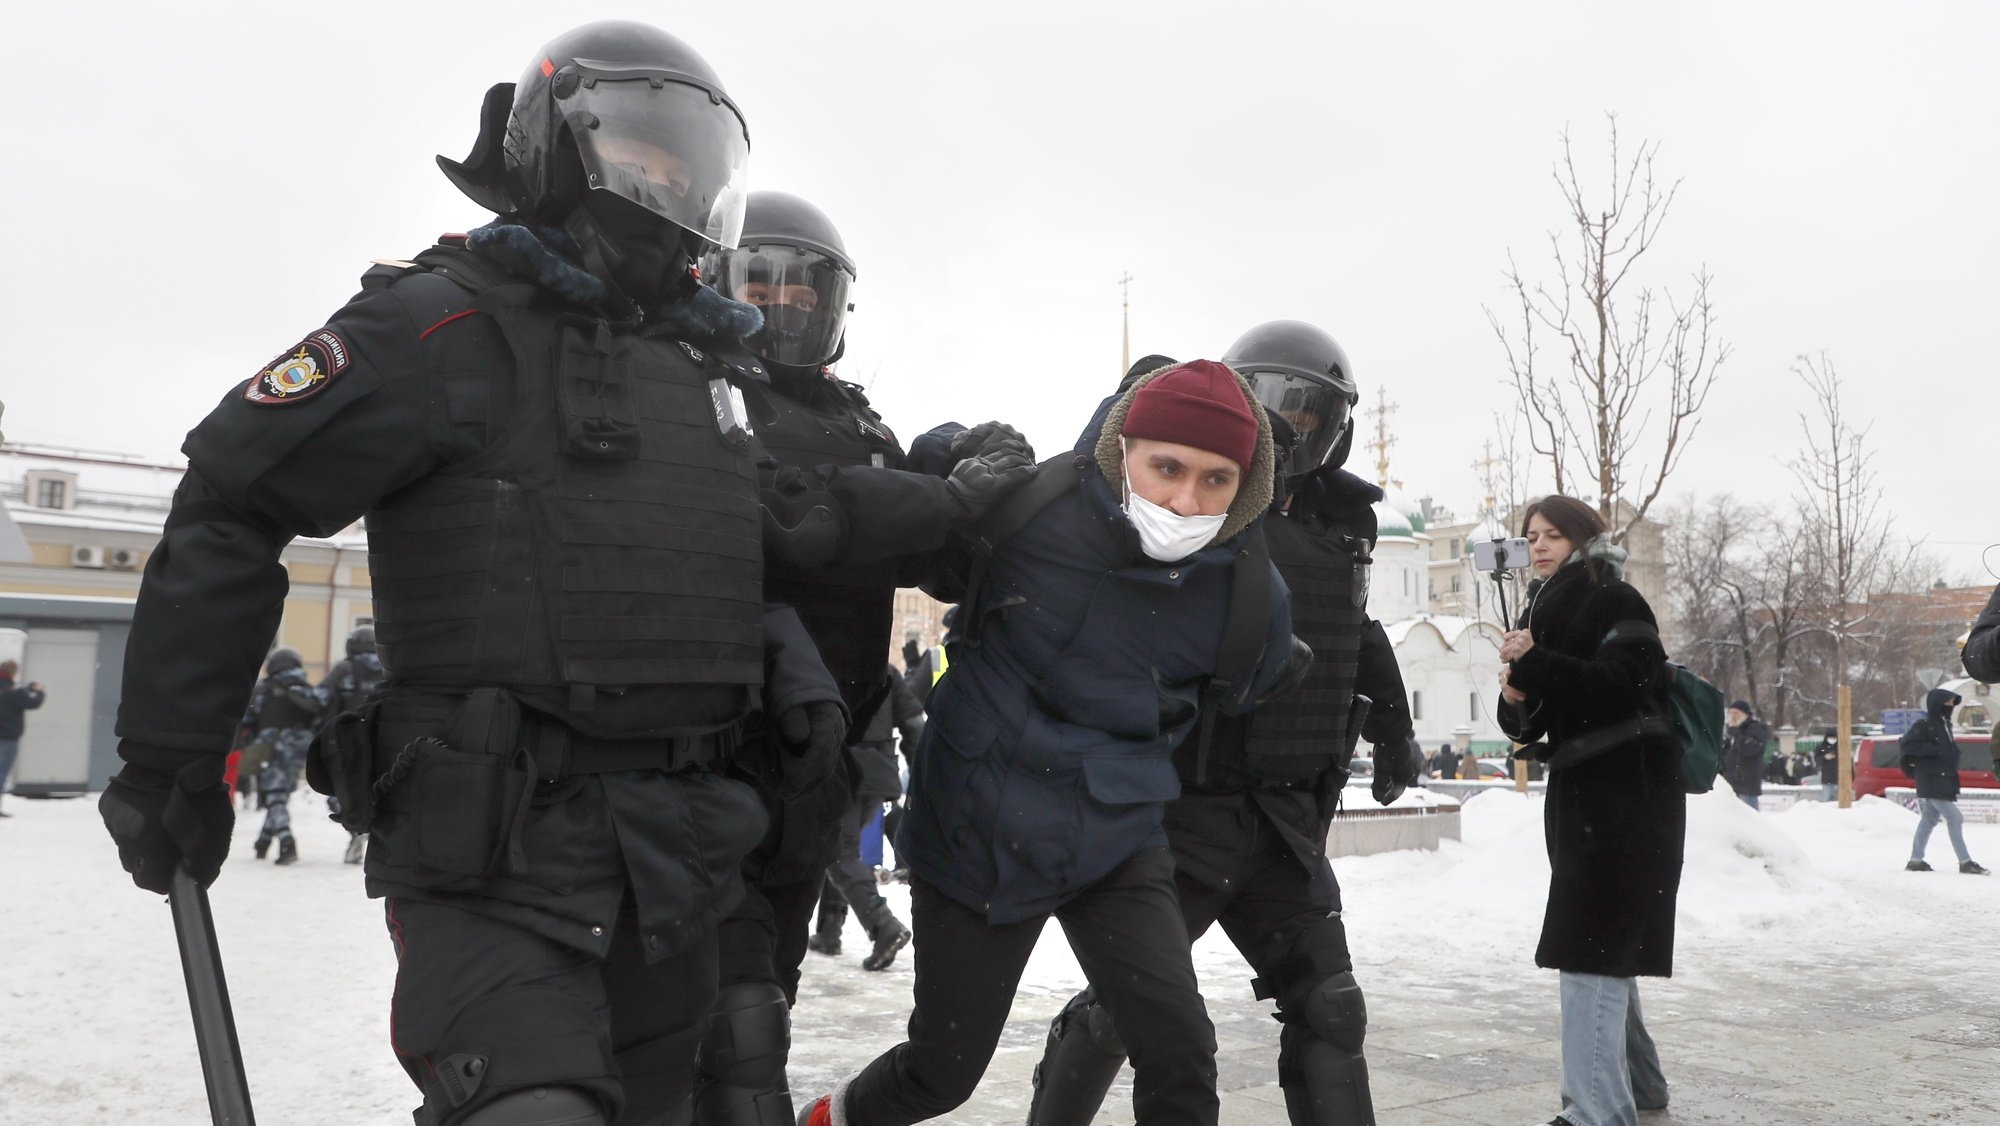 epa08976743 Russian police officers detains protester during an unauthorized protest in support of Russian opposition leader Alexei Navalny, Moscow, Russia, 31 January 2021. Navalny was detained after his arrival to Moscow from Germany on 17 January 2021. A Moscow judge on 18 January ruled that he will remain in custody for 30 days following his airport arrest. Navalny urged Russians to take to the streets to protest. In many Russian cities mass events are prohibited due to an increase in COVID-19 cases.  EPA/SERGEI ILNITSKY